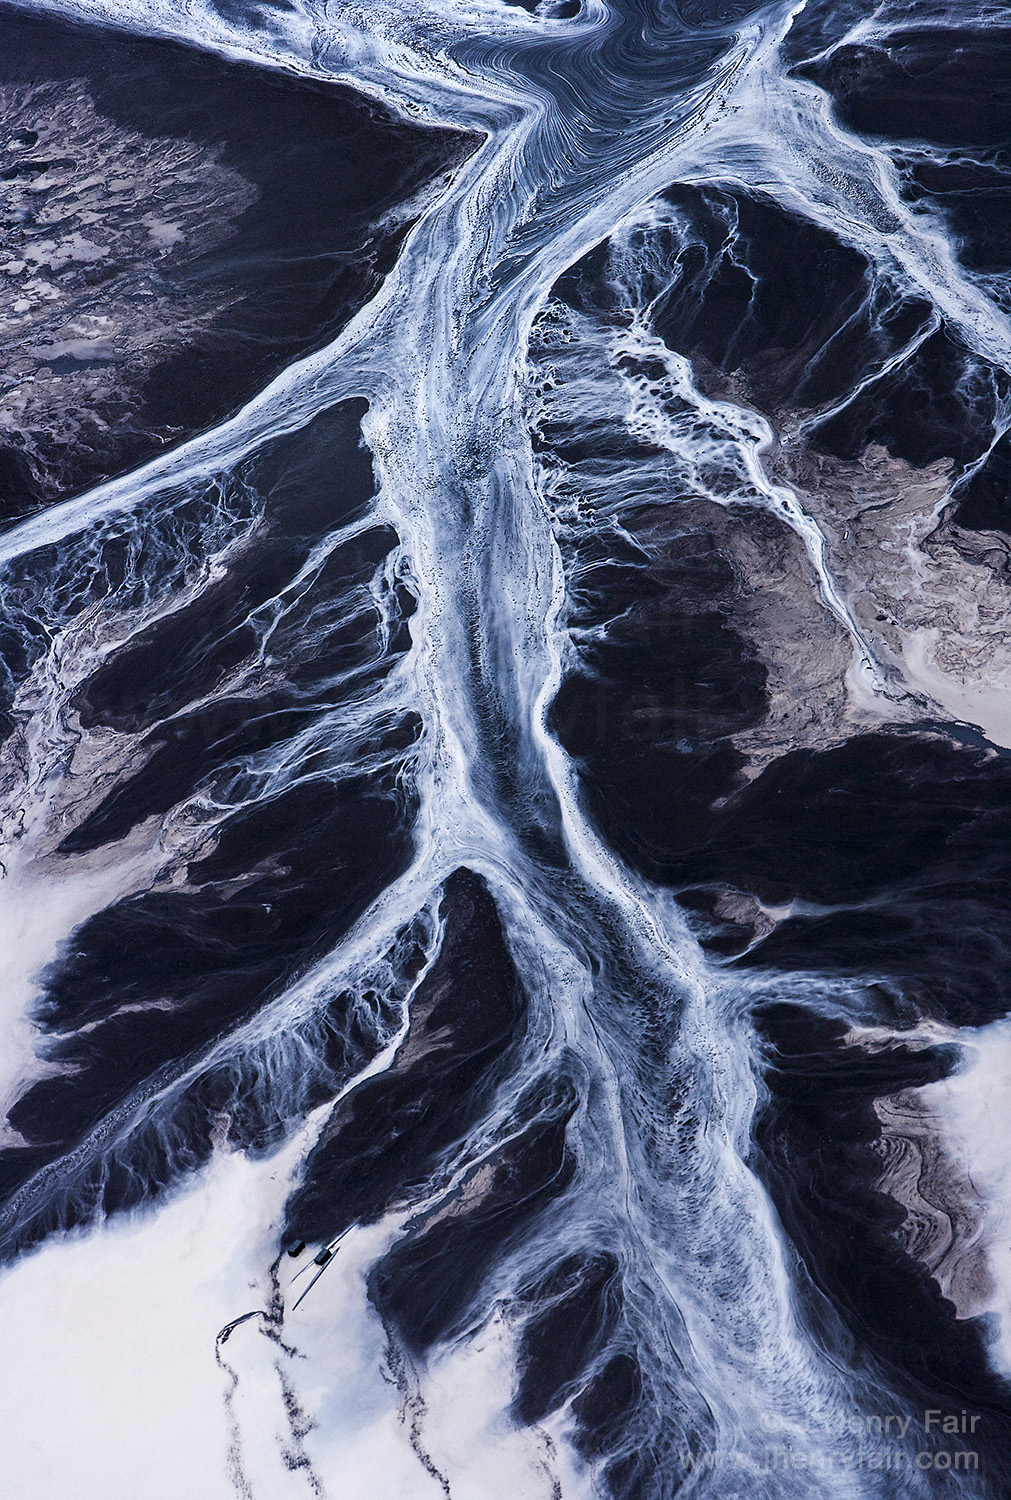 Coal Slurry- Detritus Of Water And Chemicals After Coal Is Washed